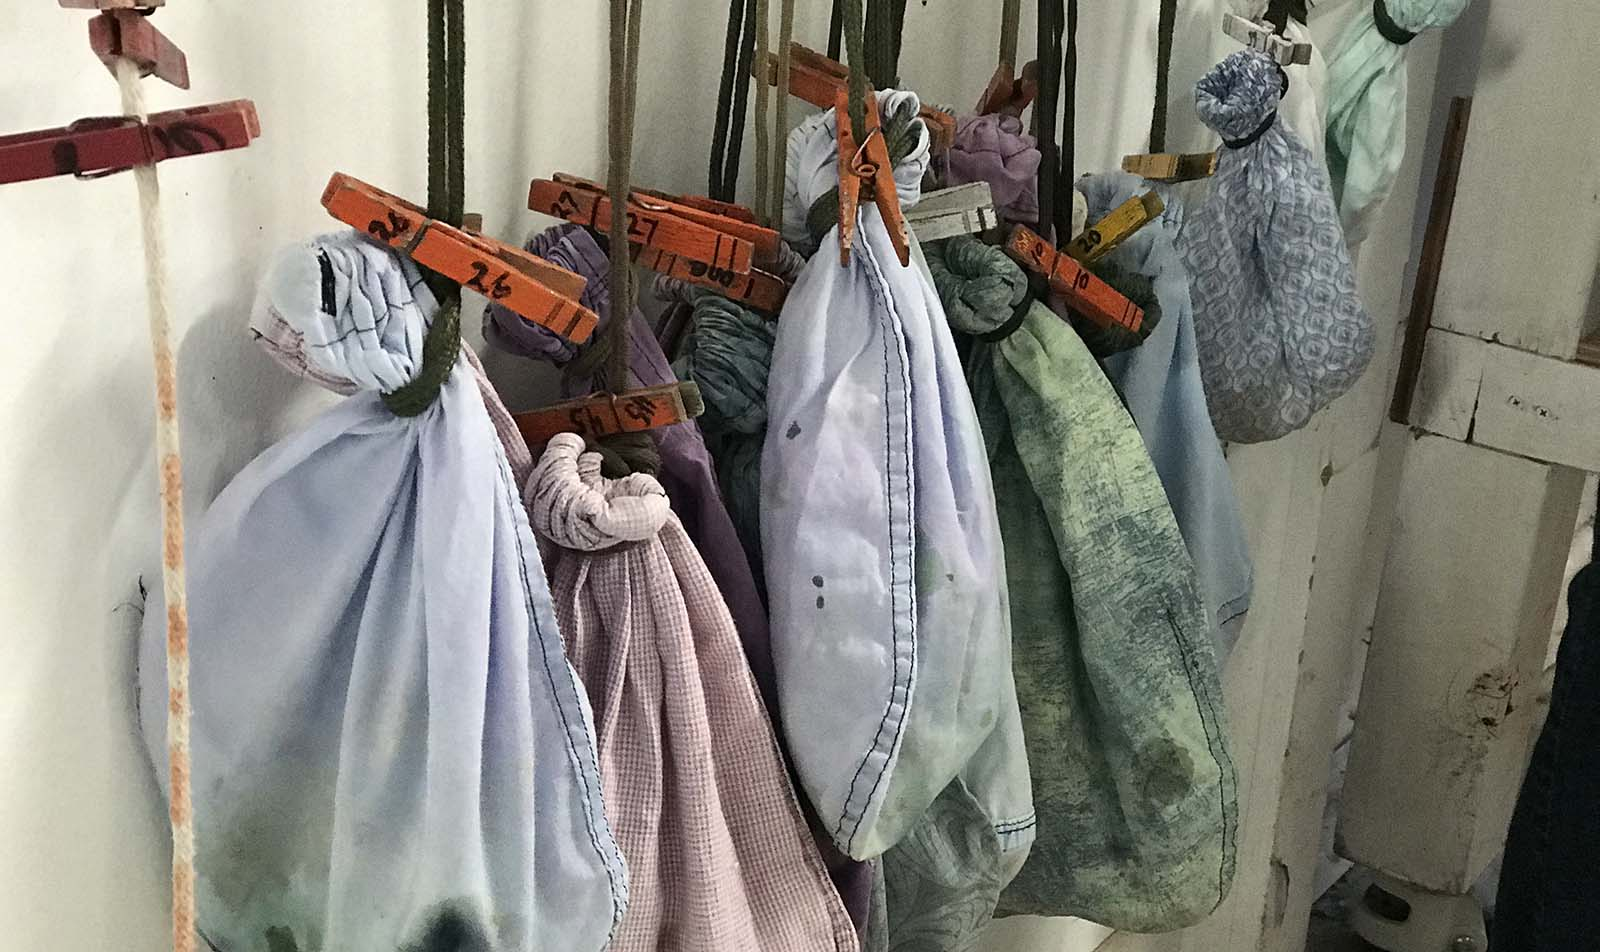 Bird bags hanging by the banding table. The birds are very calm in the bags.